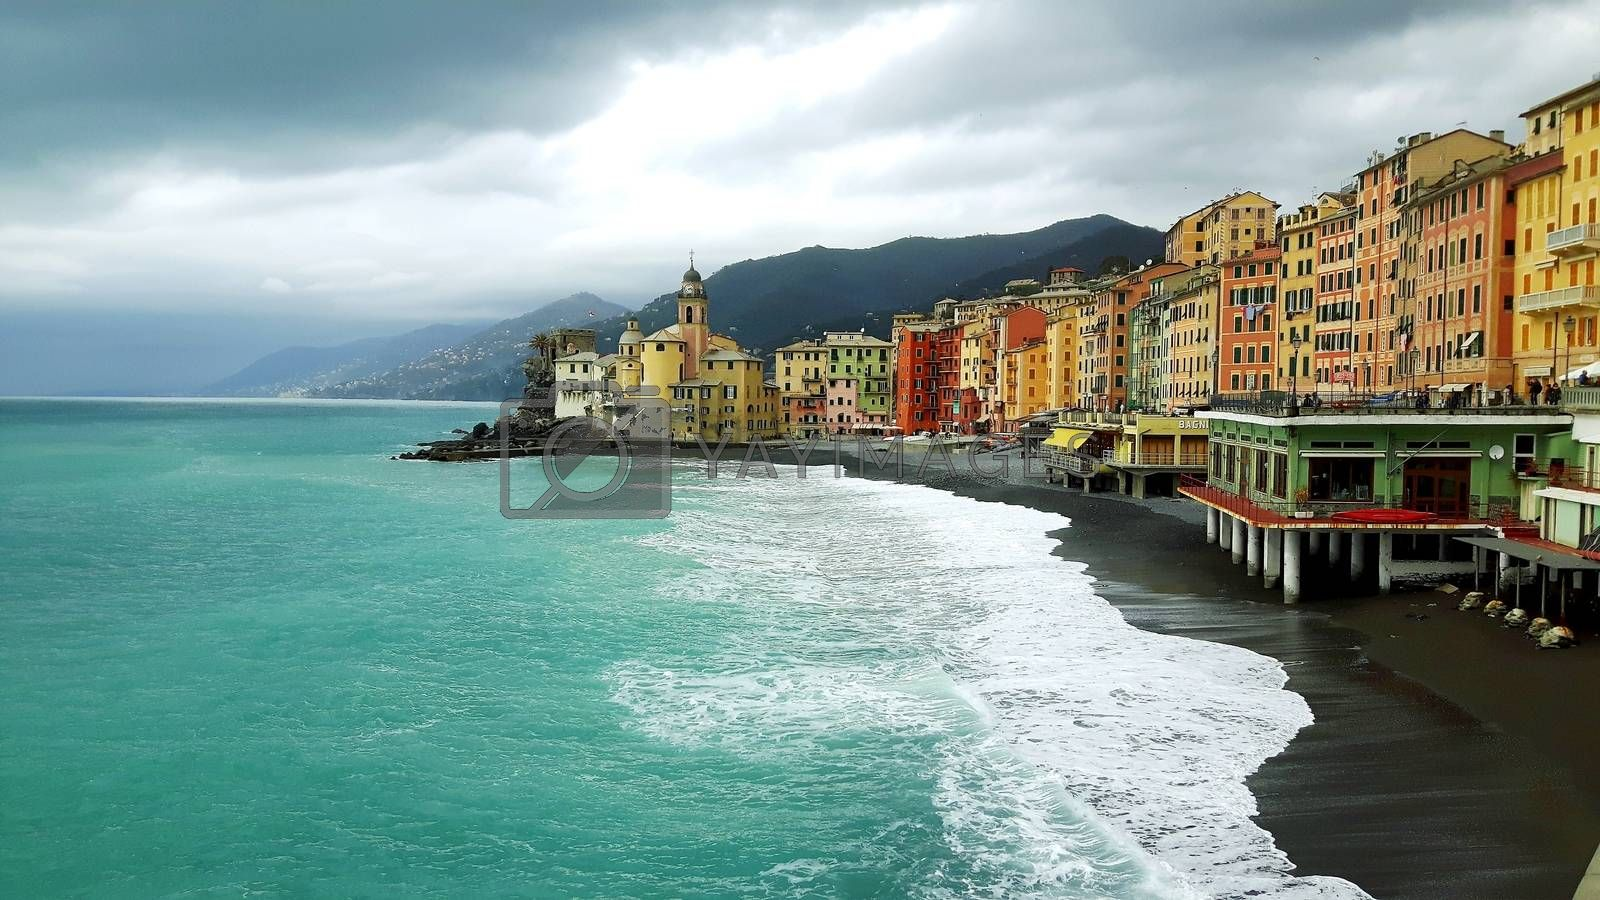 Ligurian riviera from Camogli to Portofino by yohananegusse